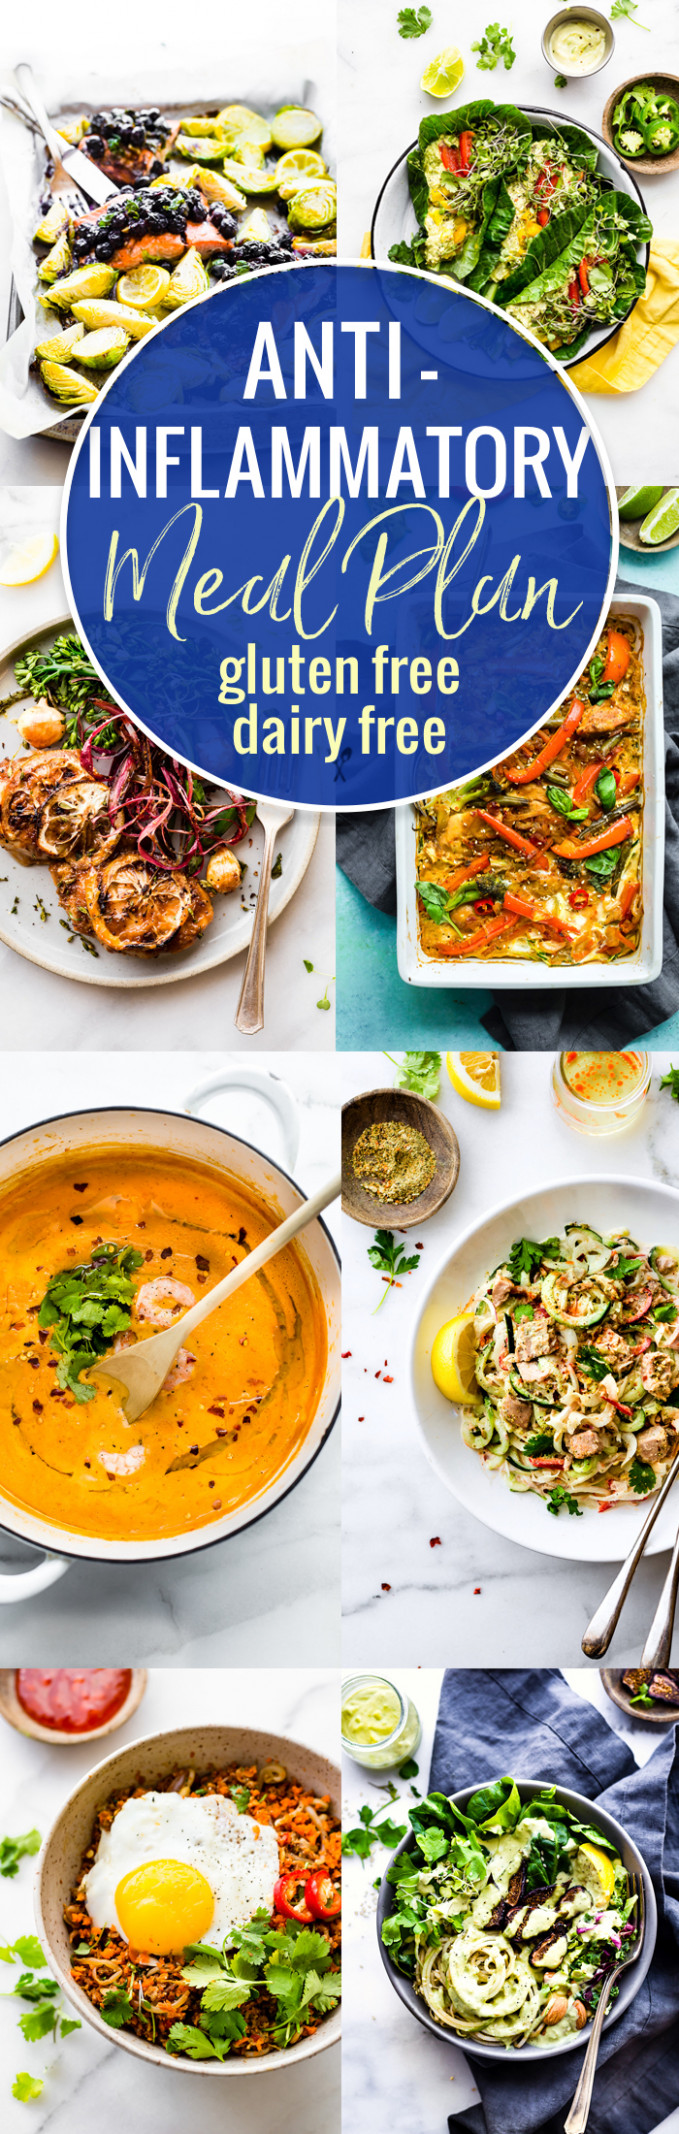 Anti-Inflammatory Meal Plan of Dairy-Free and Gluten-Free ..